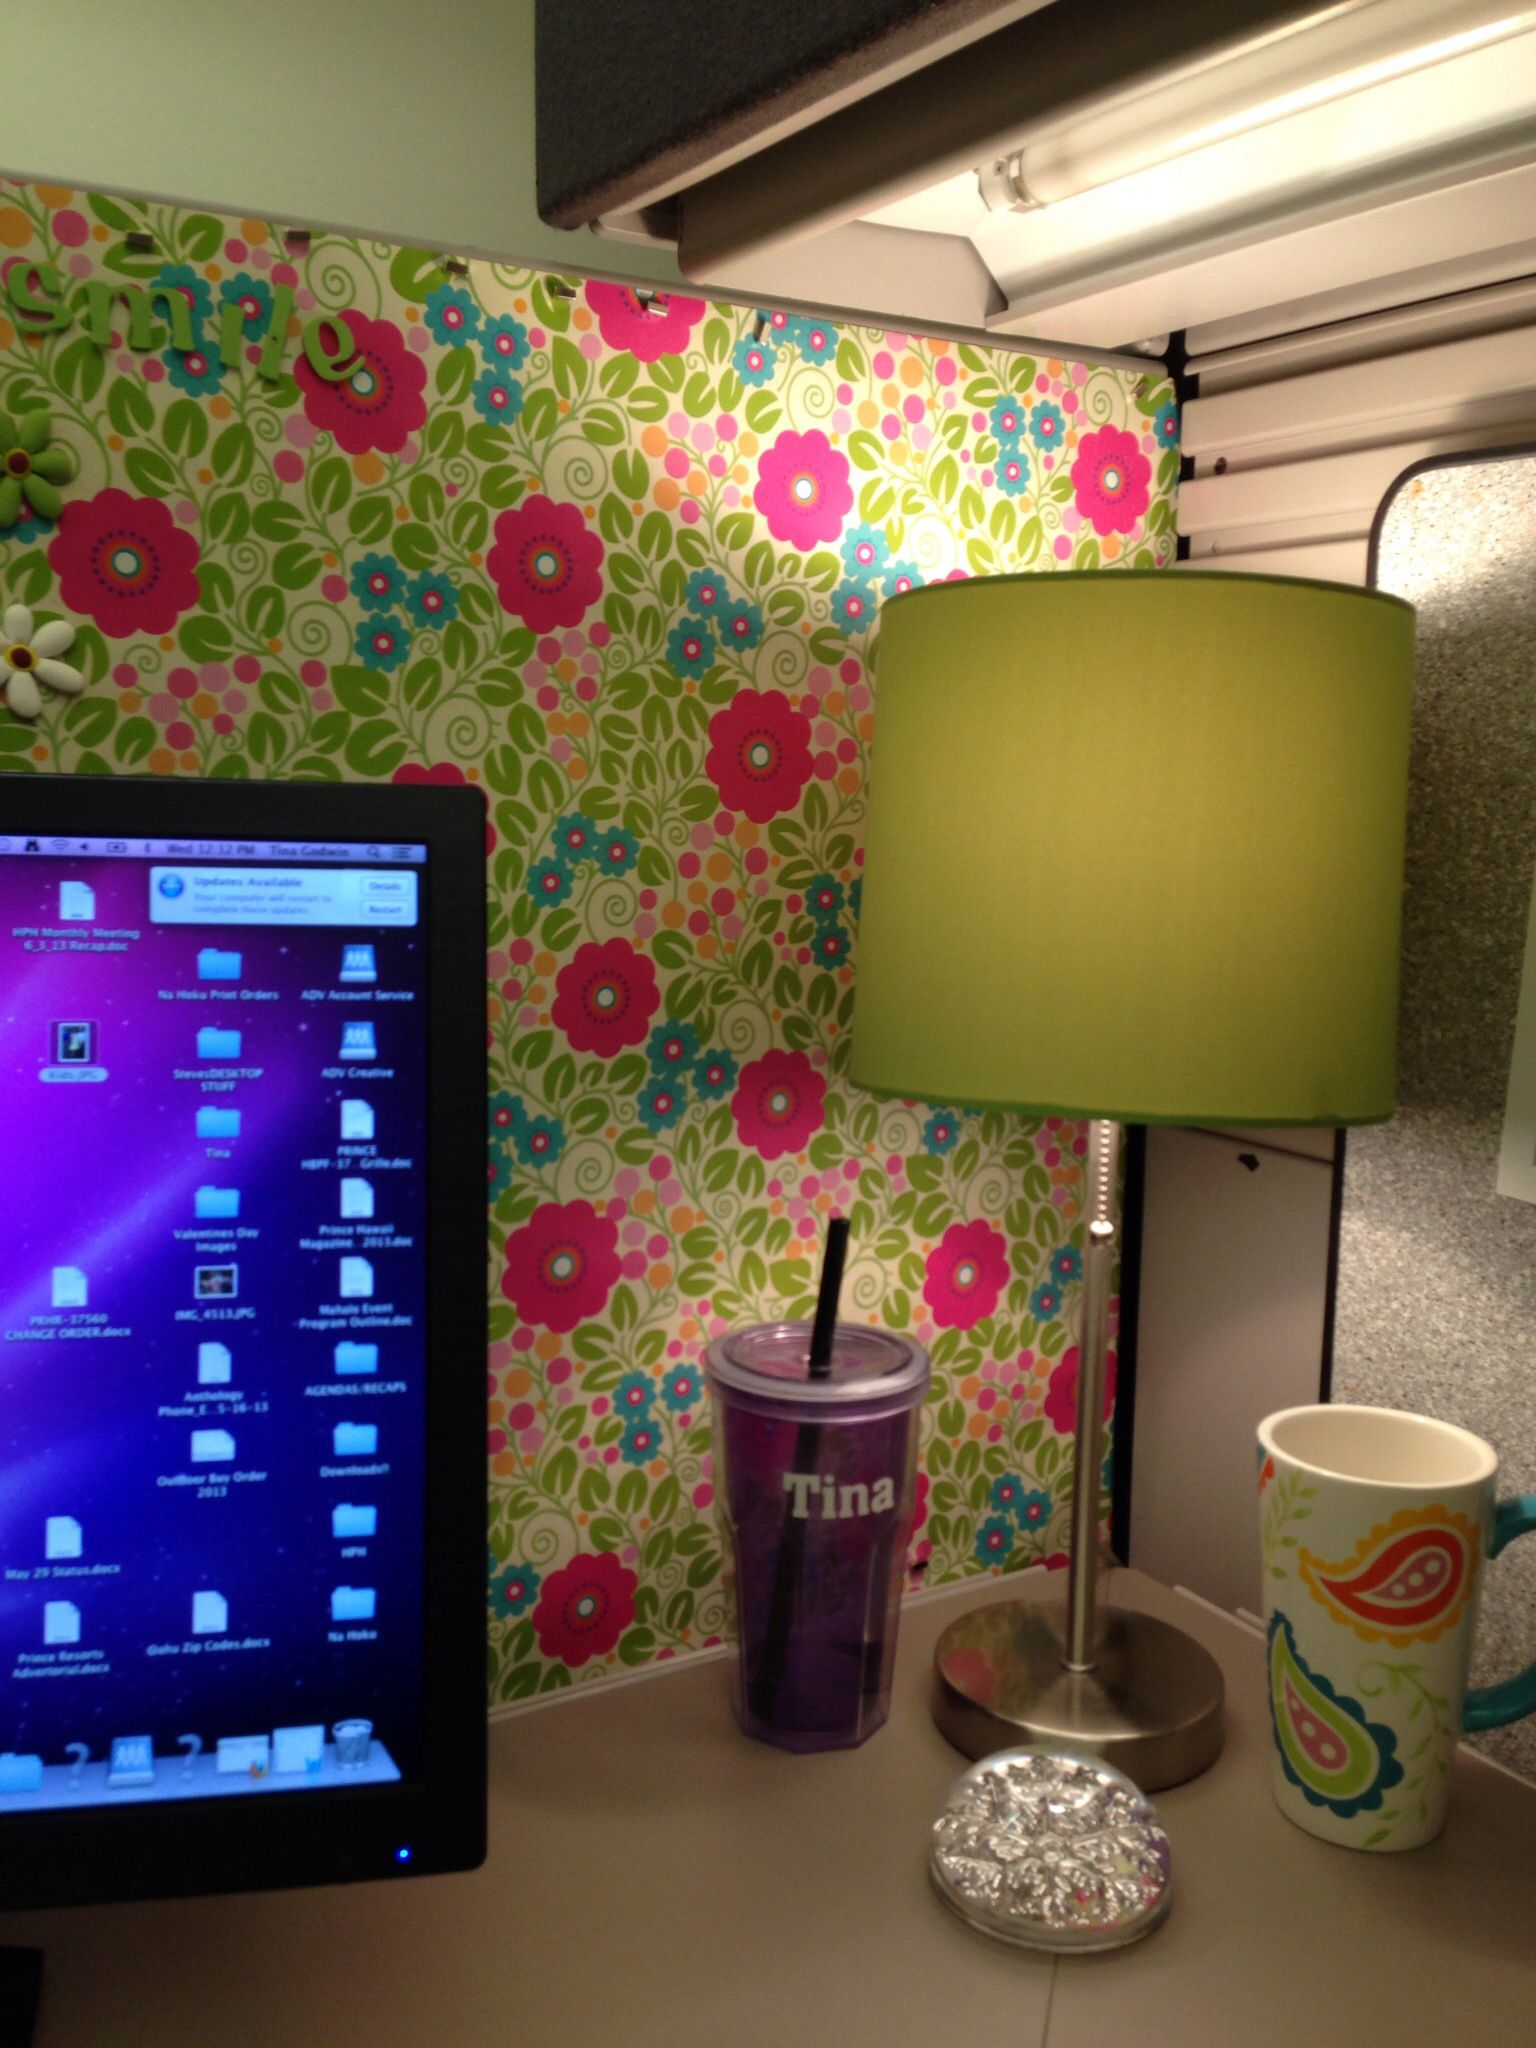 cute lamp in the corner matches my wrapping paper